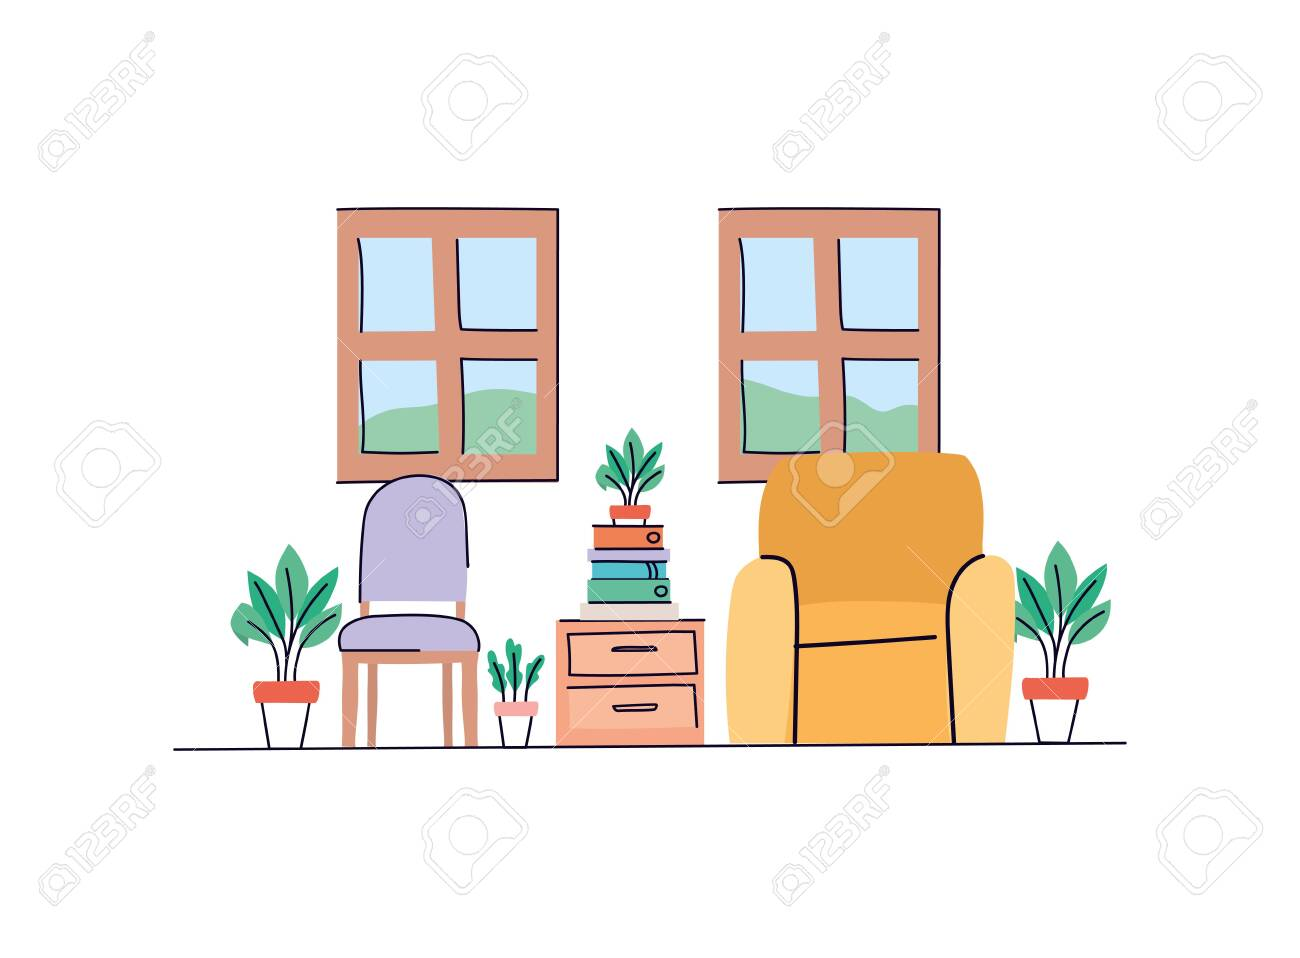 Living Room Design Home Decoration Interior Modern House Decor Living And Apartment Theme Vector Illustration Lizenzfrei Nutzbare Vektorgrafiken Clip Arts Illustrationen Image 142646252